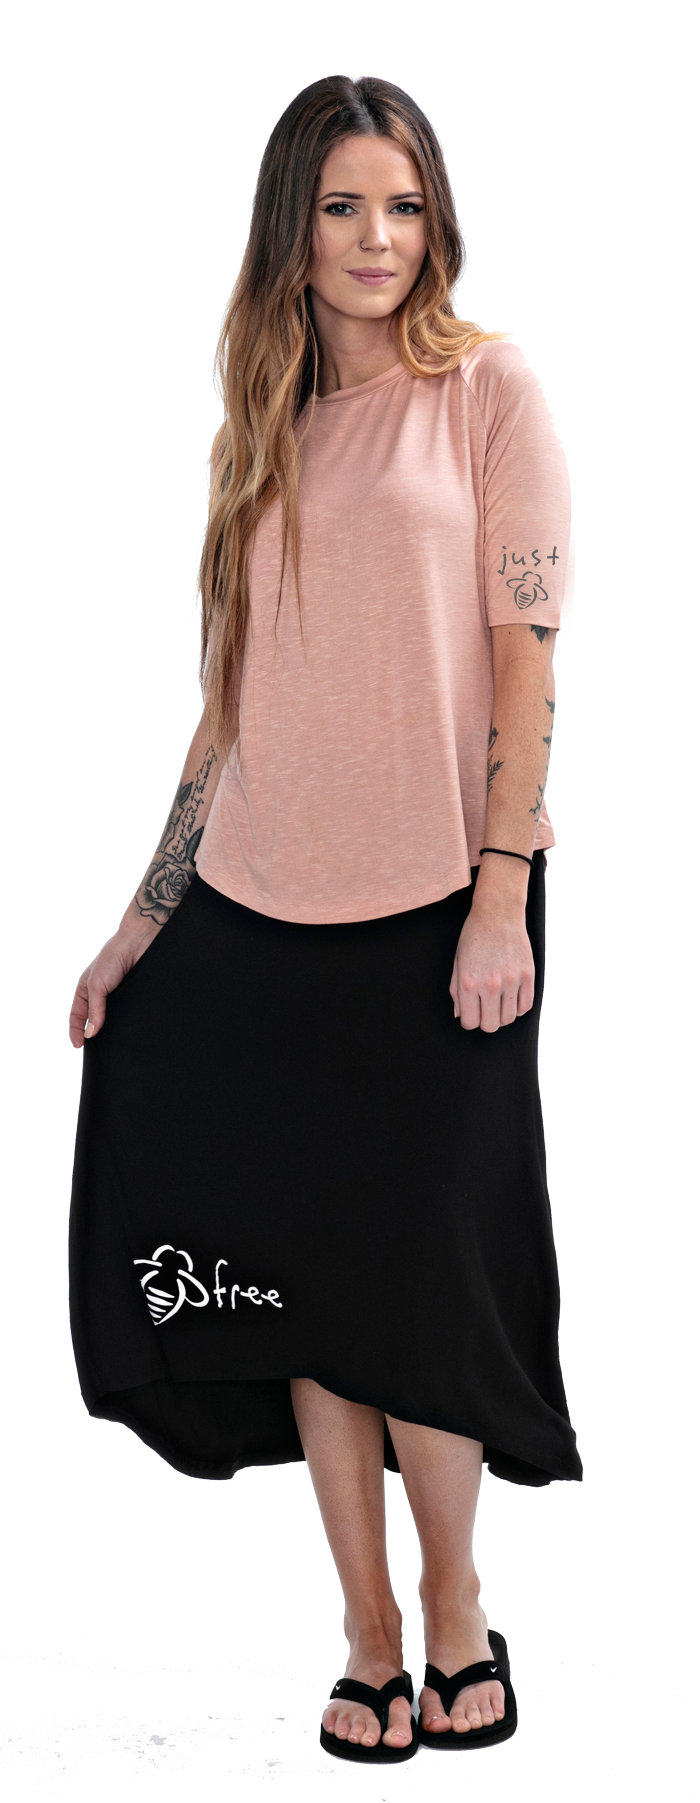 Just Bee Elbow Sleeve Tee